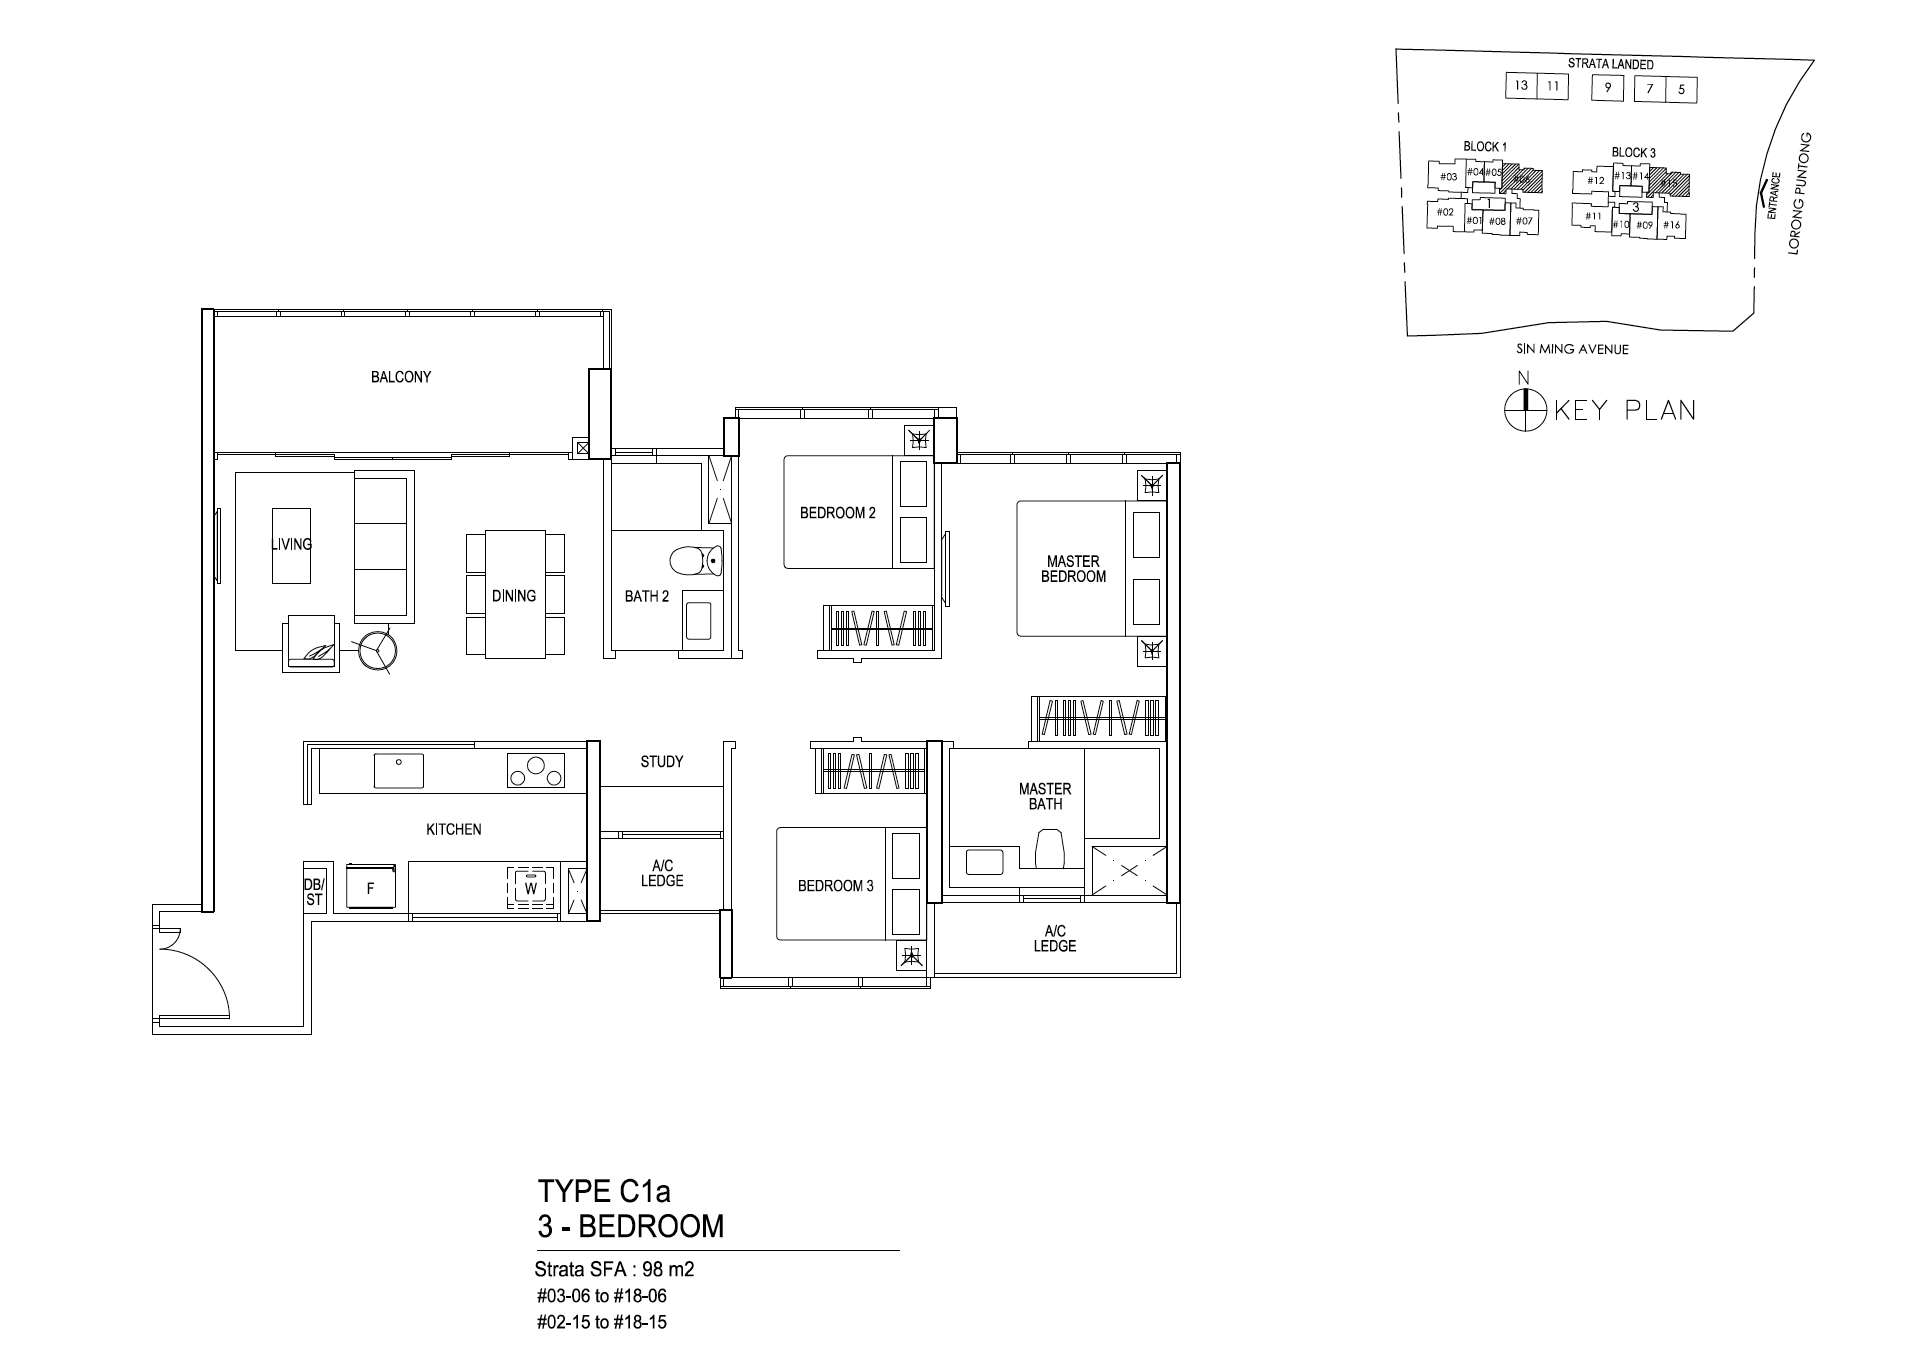 Thomson Impressions 3 bedroom floor plan type C1a